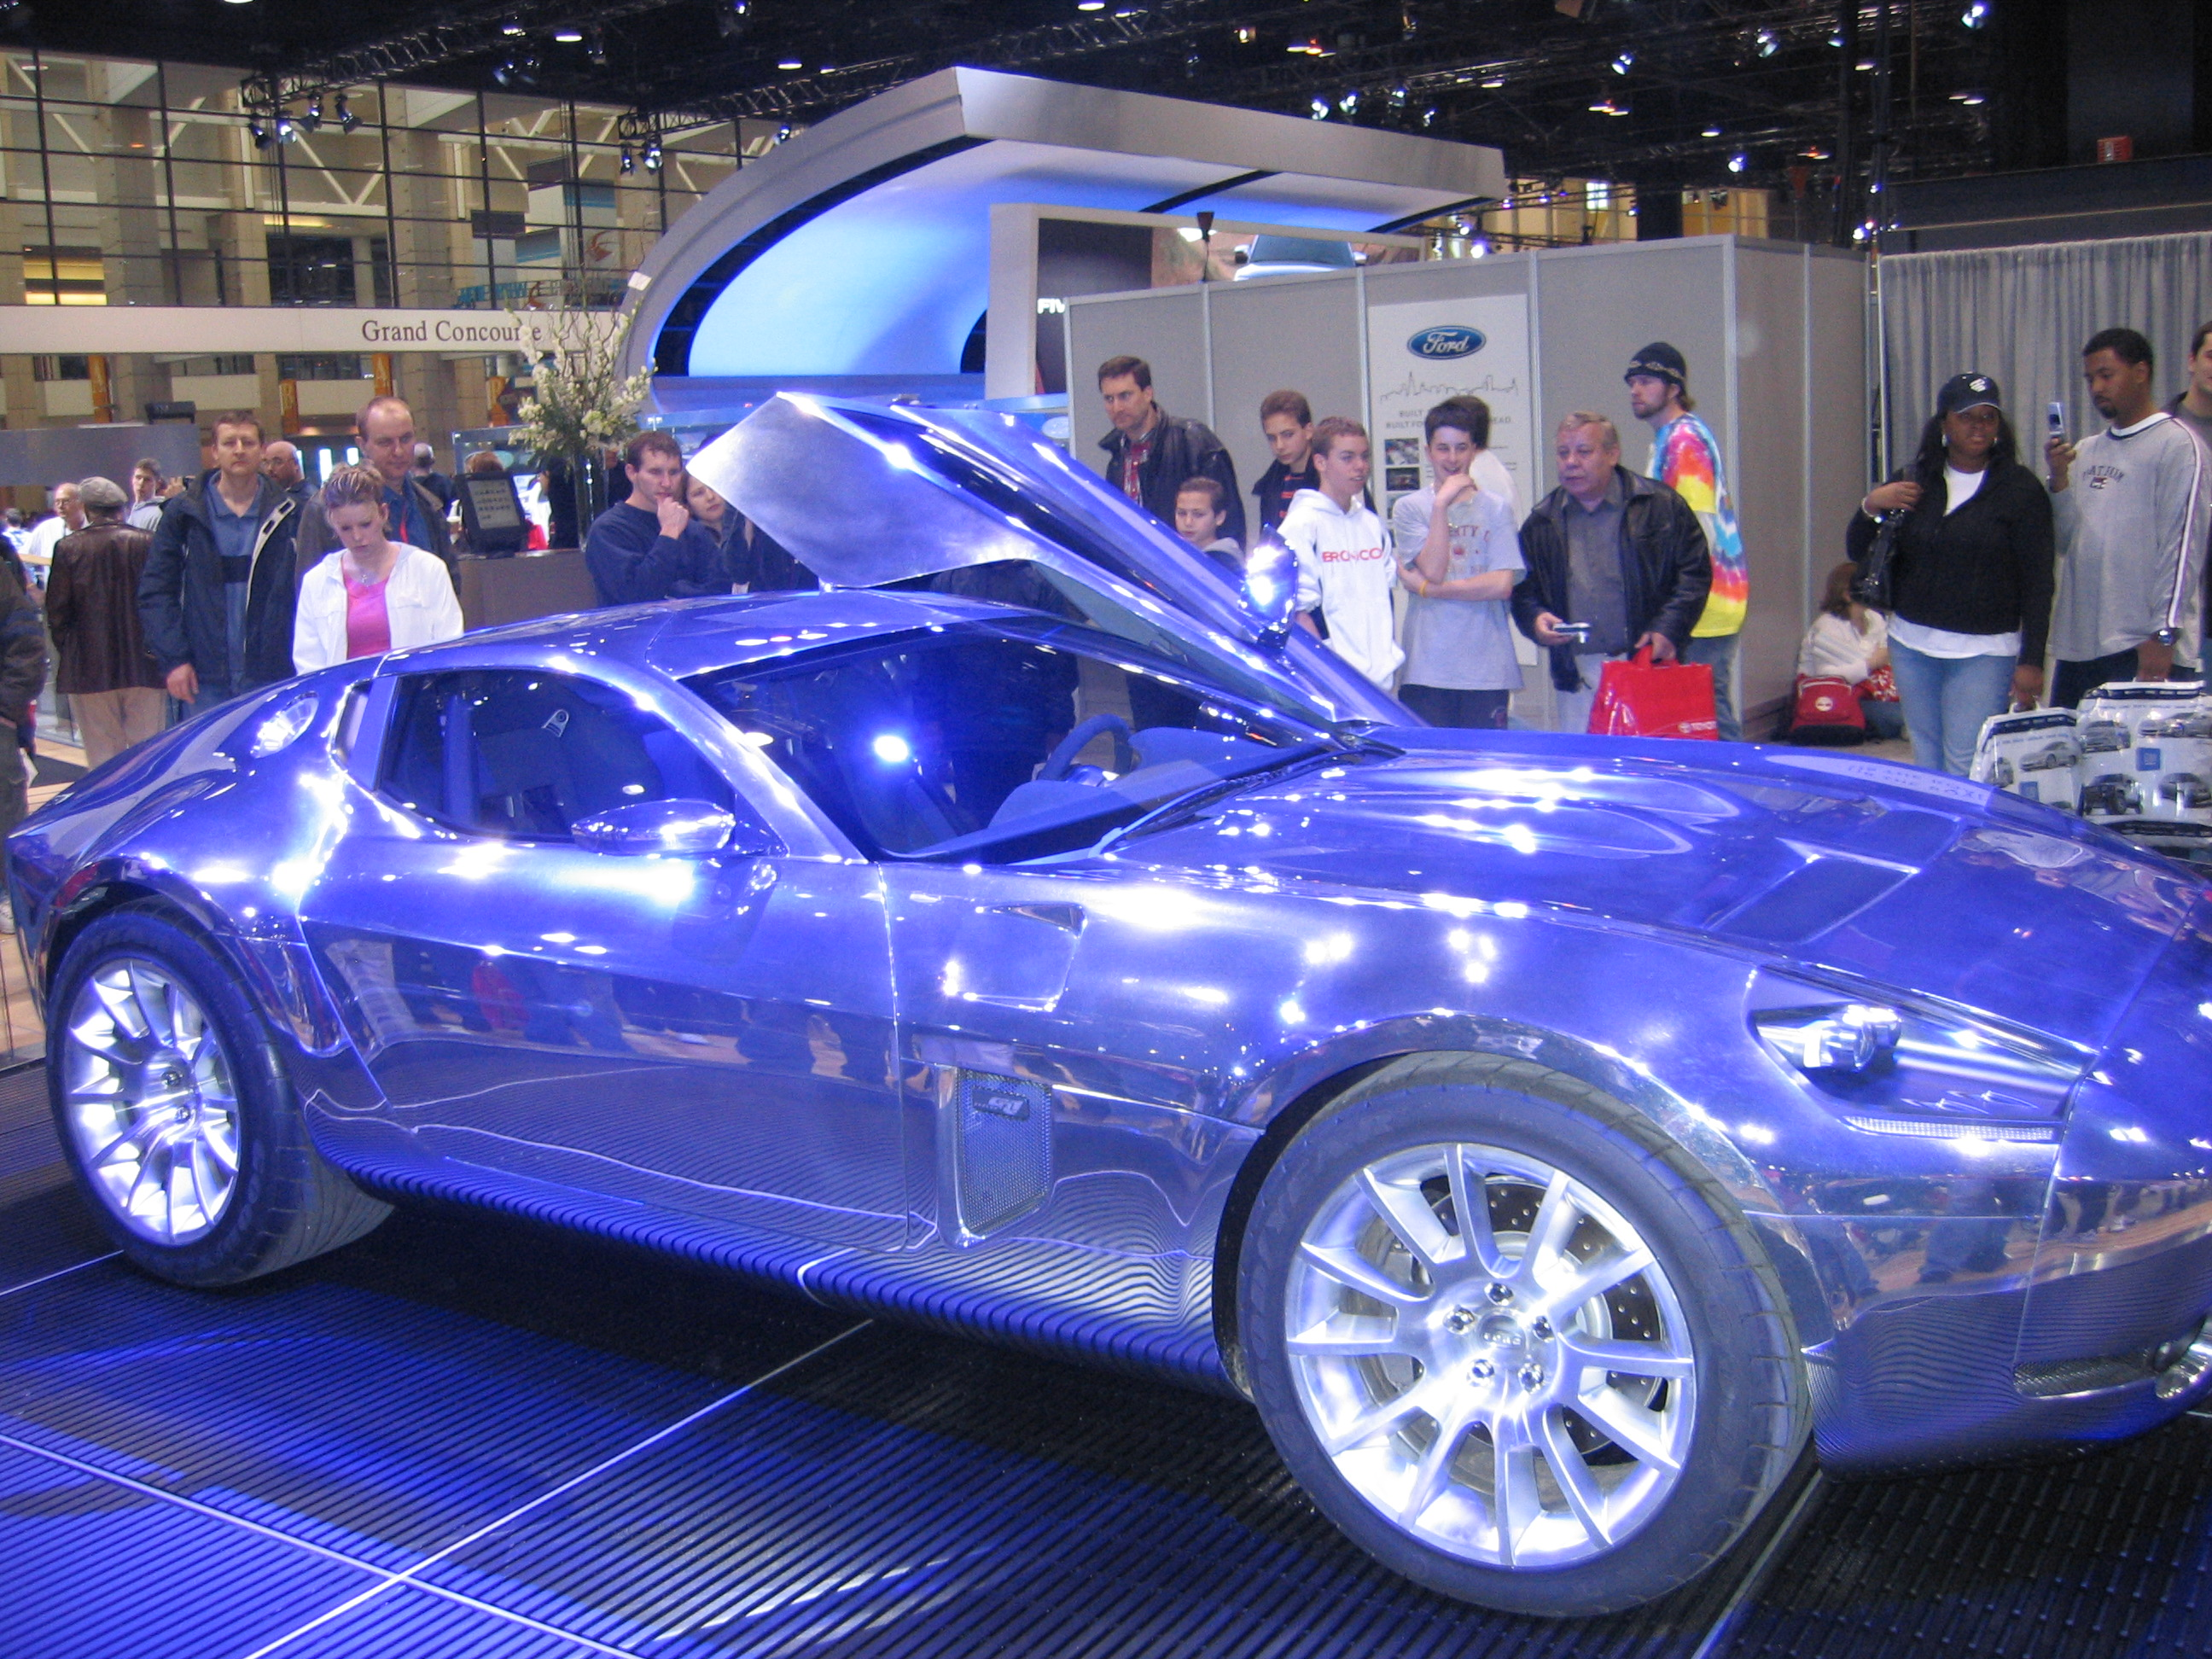 FileFord Prototype Car A Chicago Auto Show In Jpg Wikimedia - Ford show car